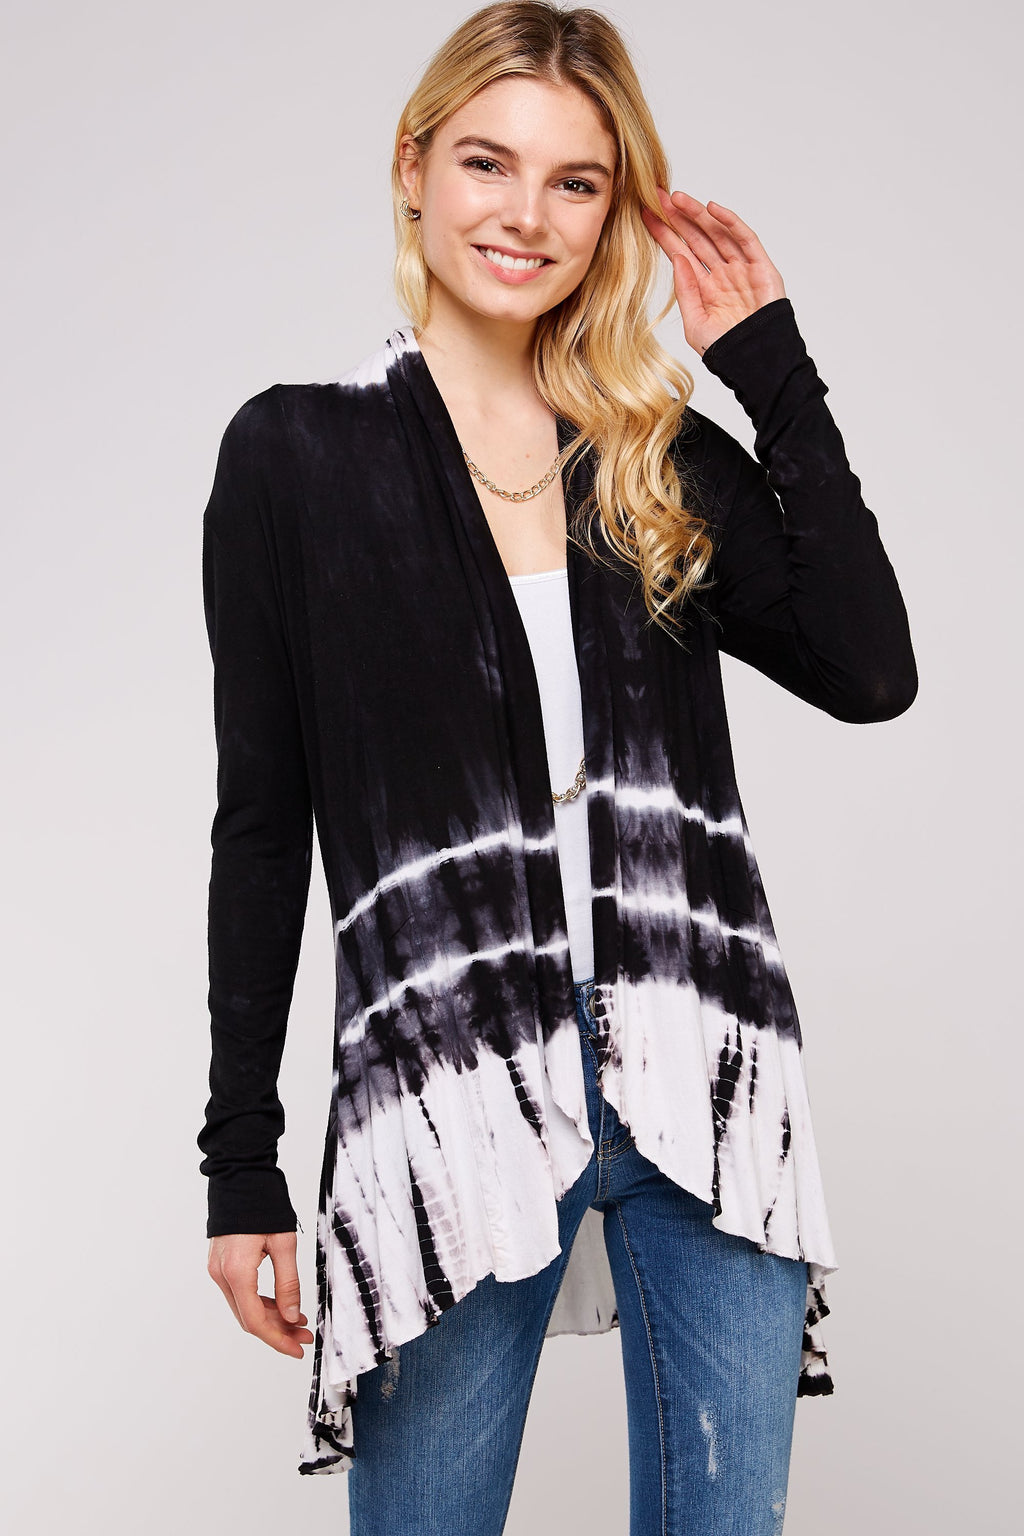 Wholesale Clothing, Online Wholesale Clothing, Women Clothing, Bohemian, Free People, tiedye, specialty wash, wholesale seller, wholesale women clothing shop, gypsy look, USA made, URBAN X PLUS-PLUS-UCR3003, fashiontrend2019